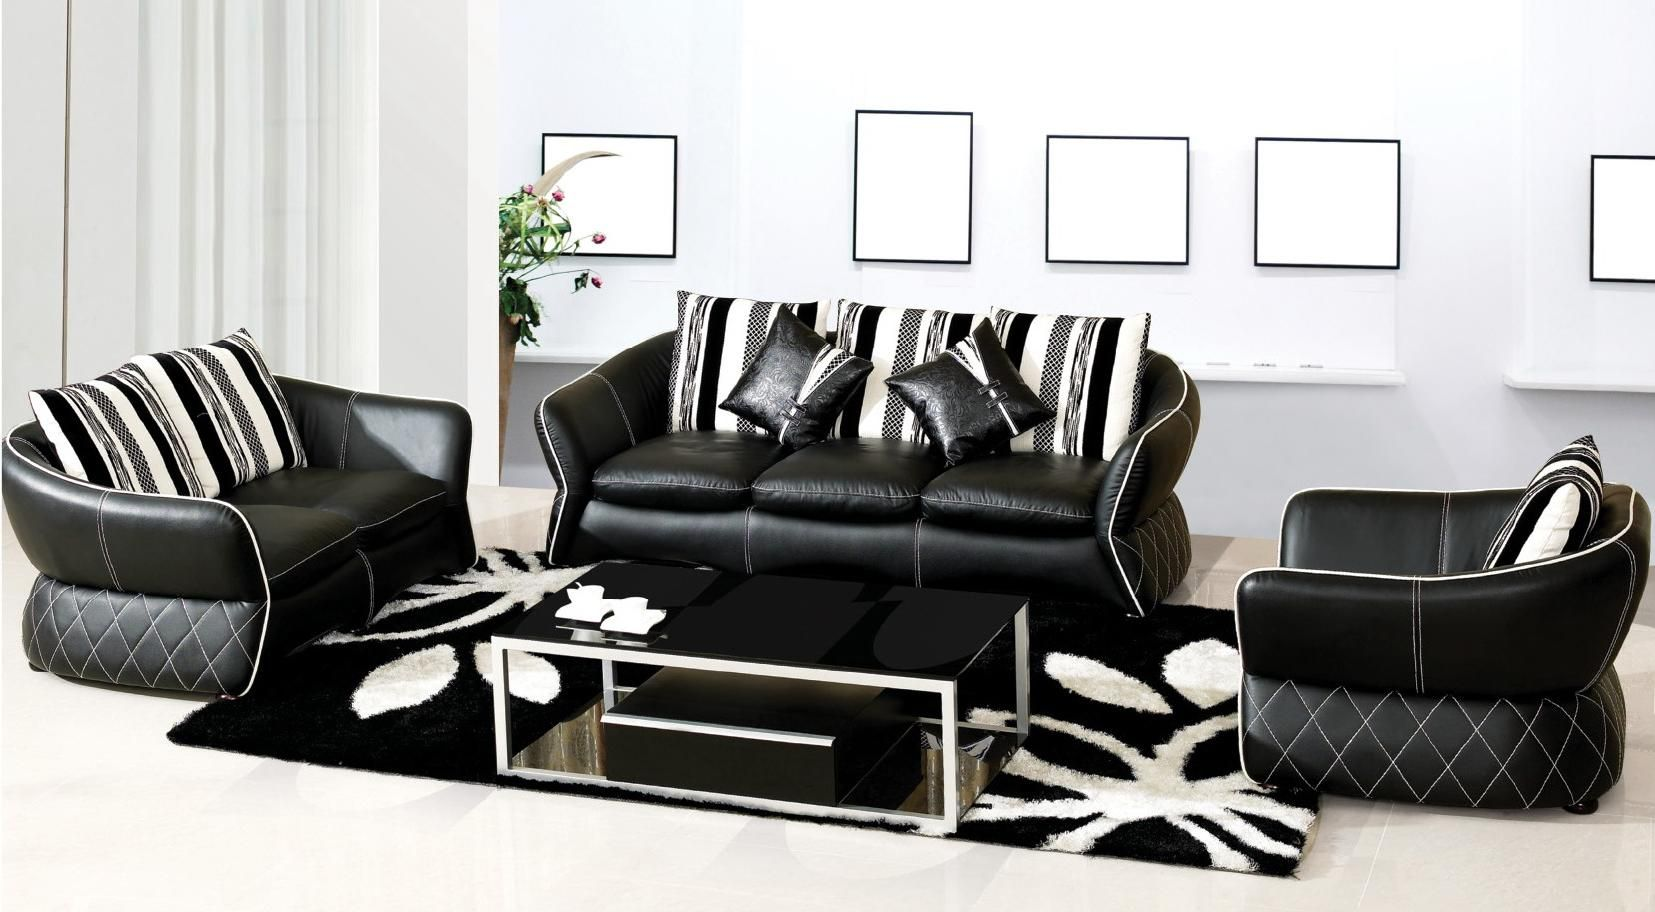 Browse Awesome Living Room Decorating Ideas And Furniture Layouts Amazing Black Leather Living Room Furniture Inspiration